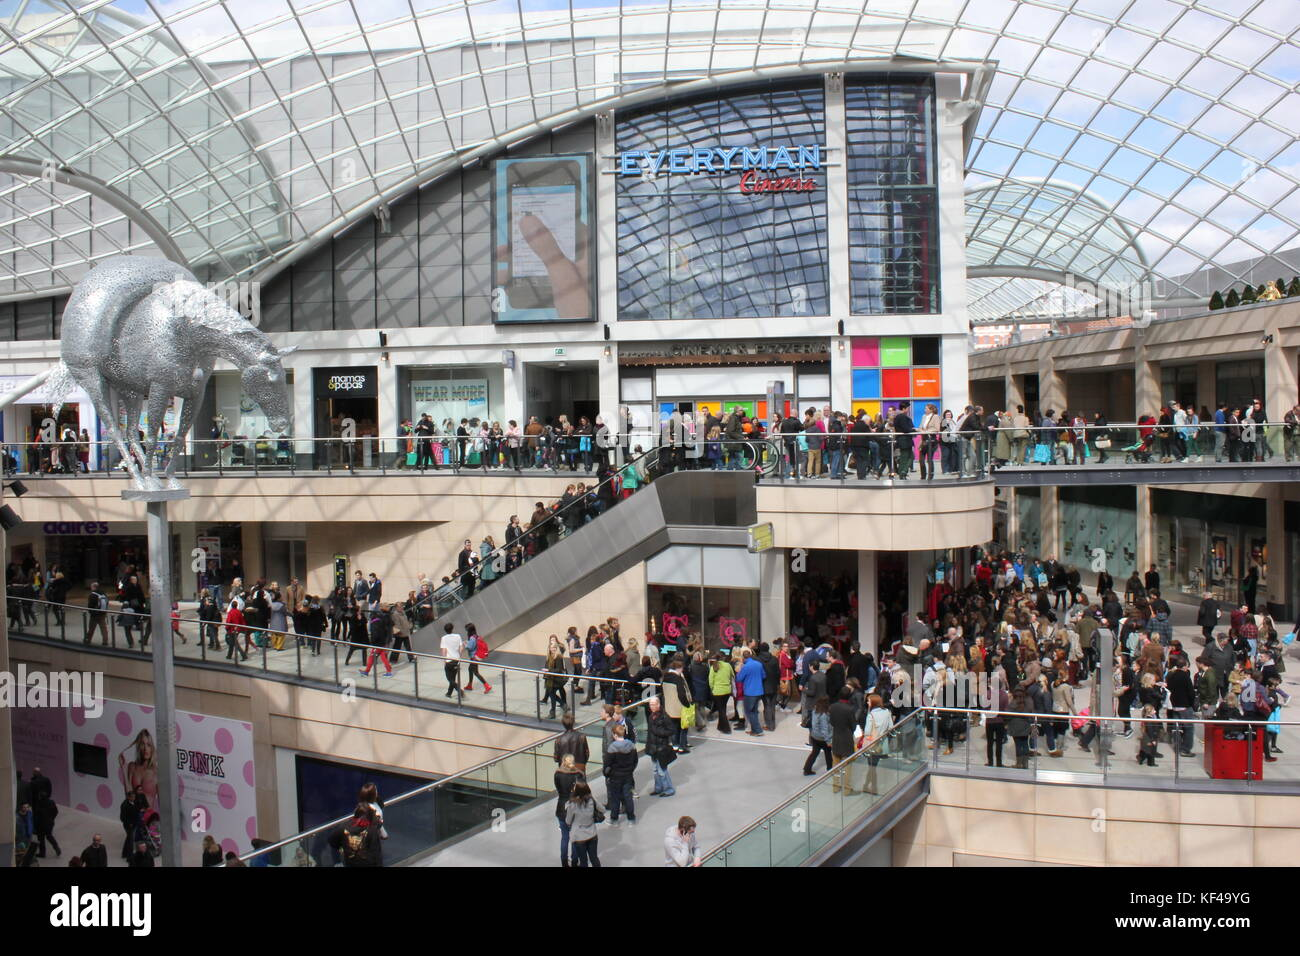 Trinity Leeds is a shopping and leisure centre in Leeds, UK. Located in the centre of Leeds. It opened on 21 March - Stock Image